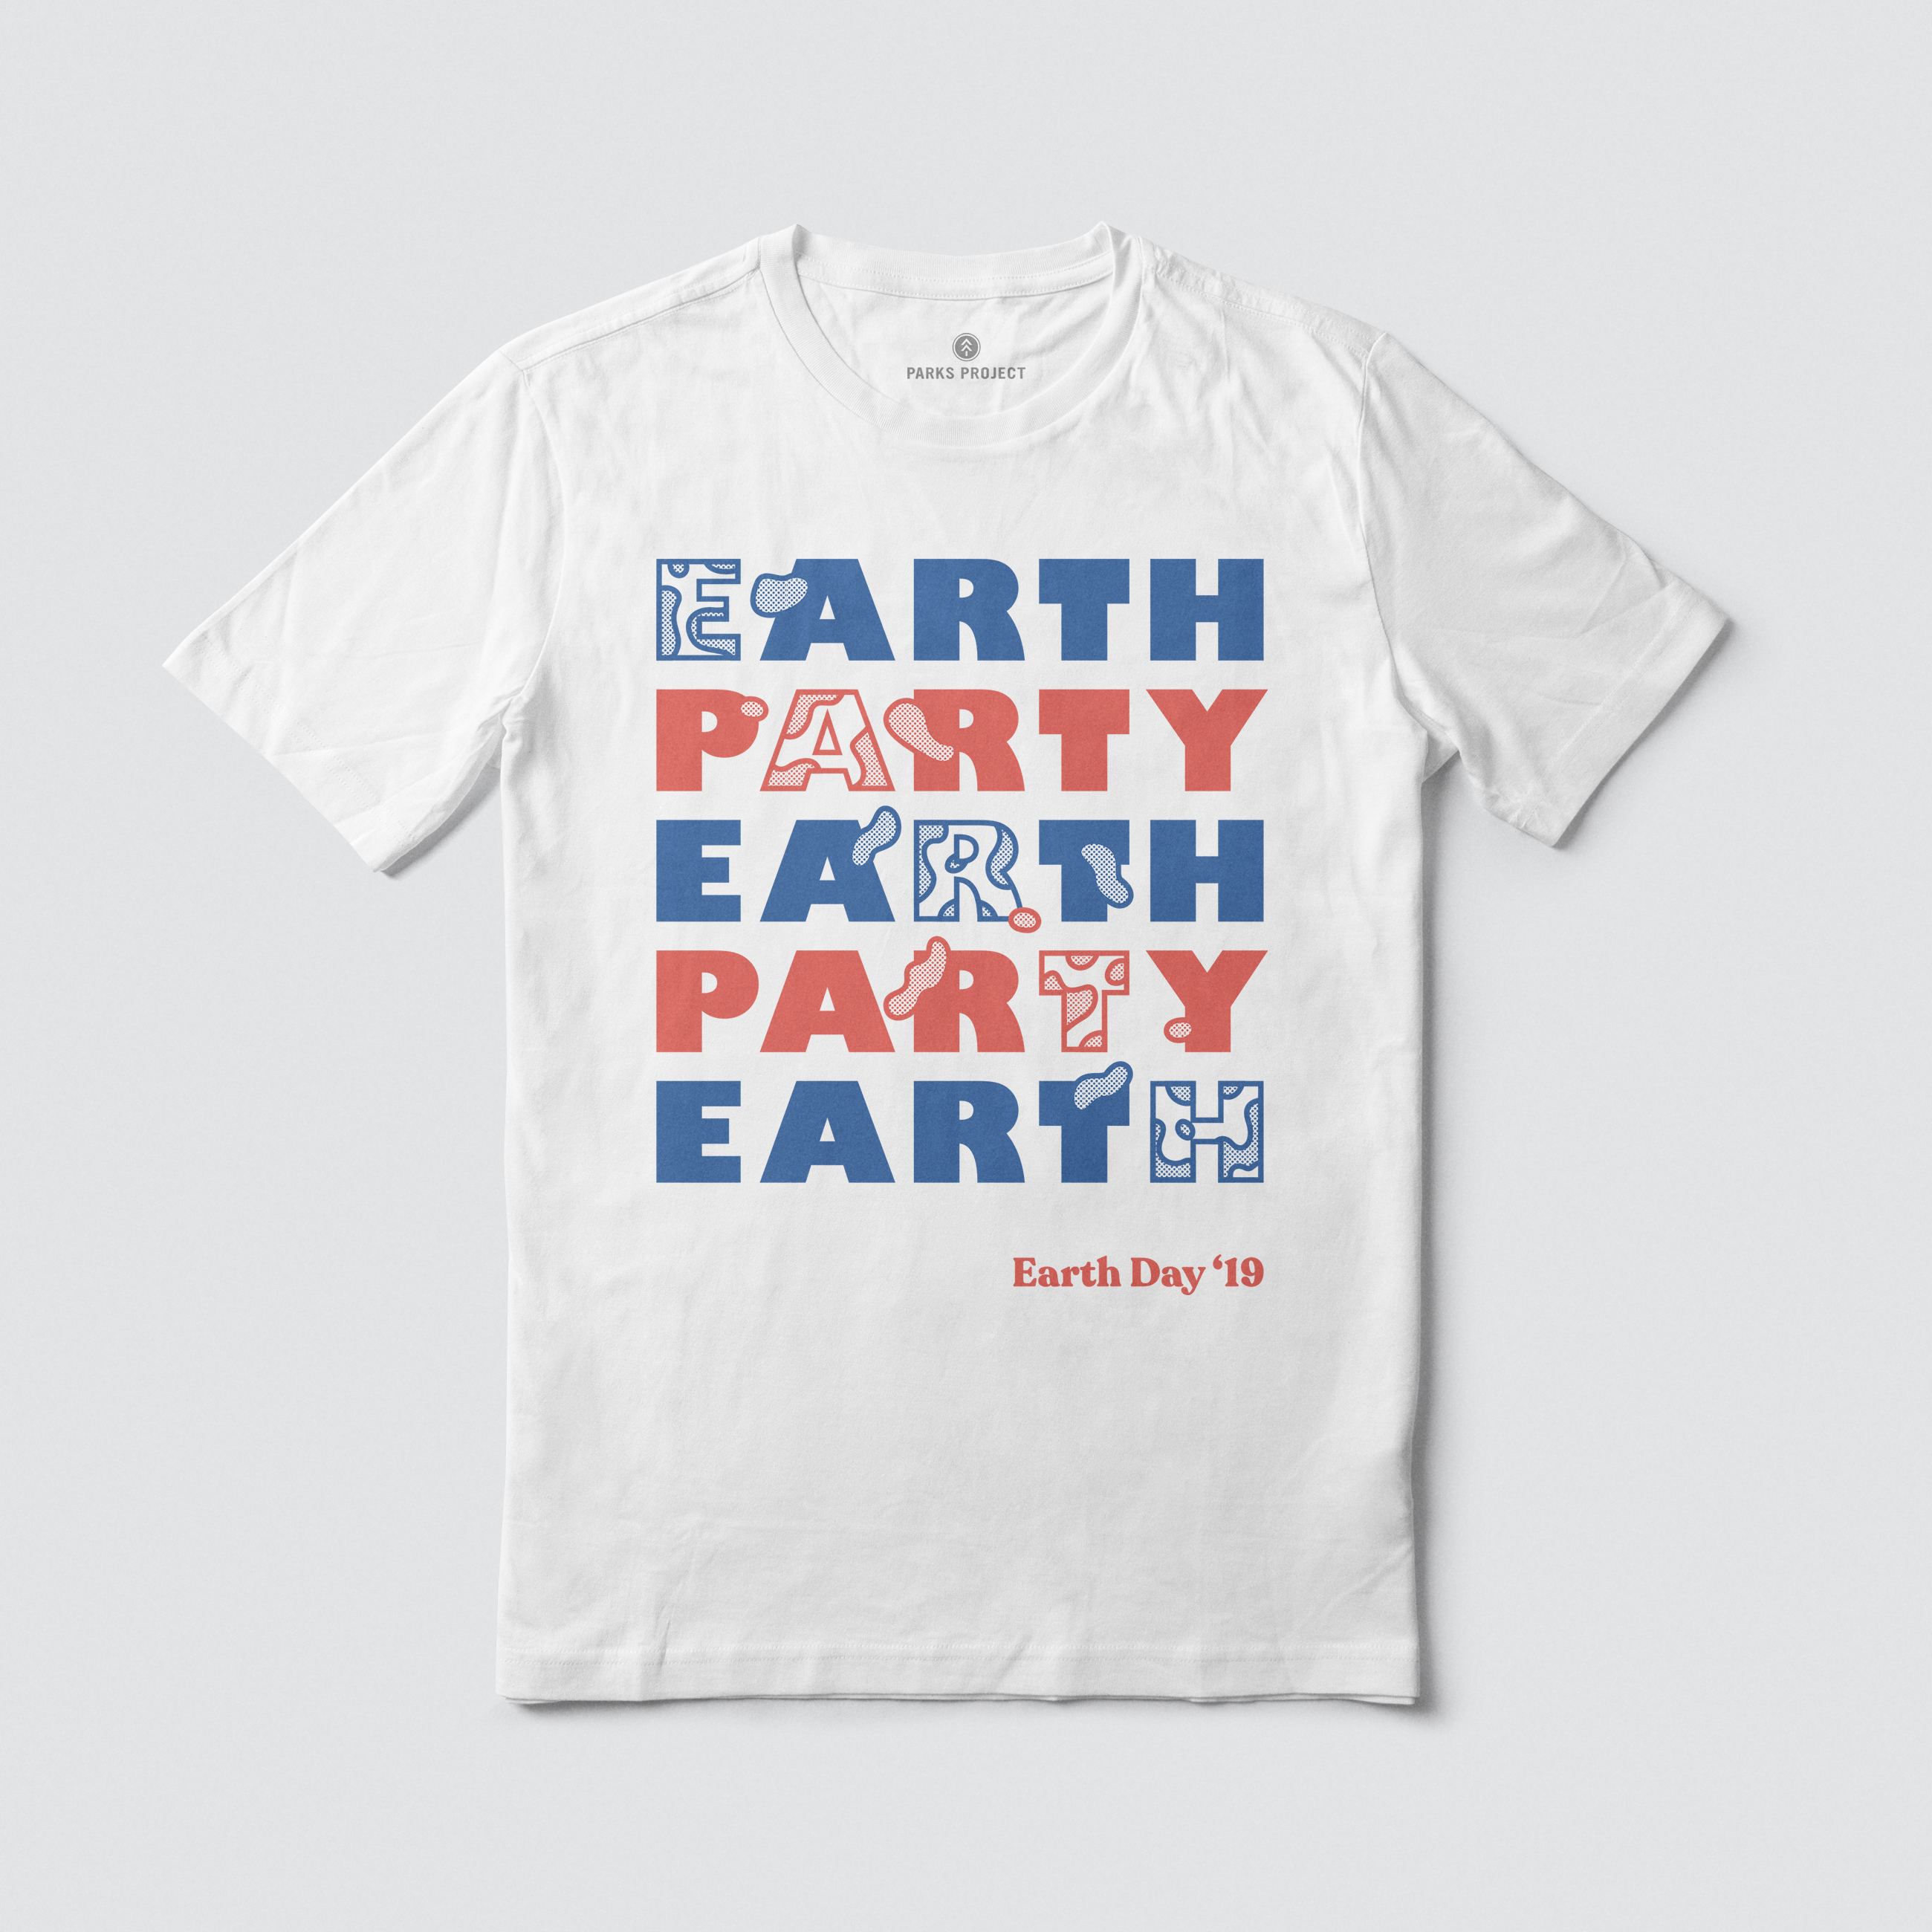 TBS_NF_ParksProject_Tee_7